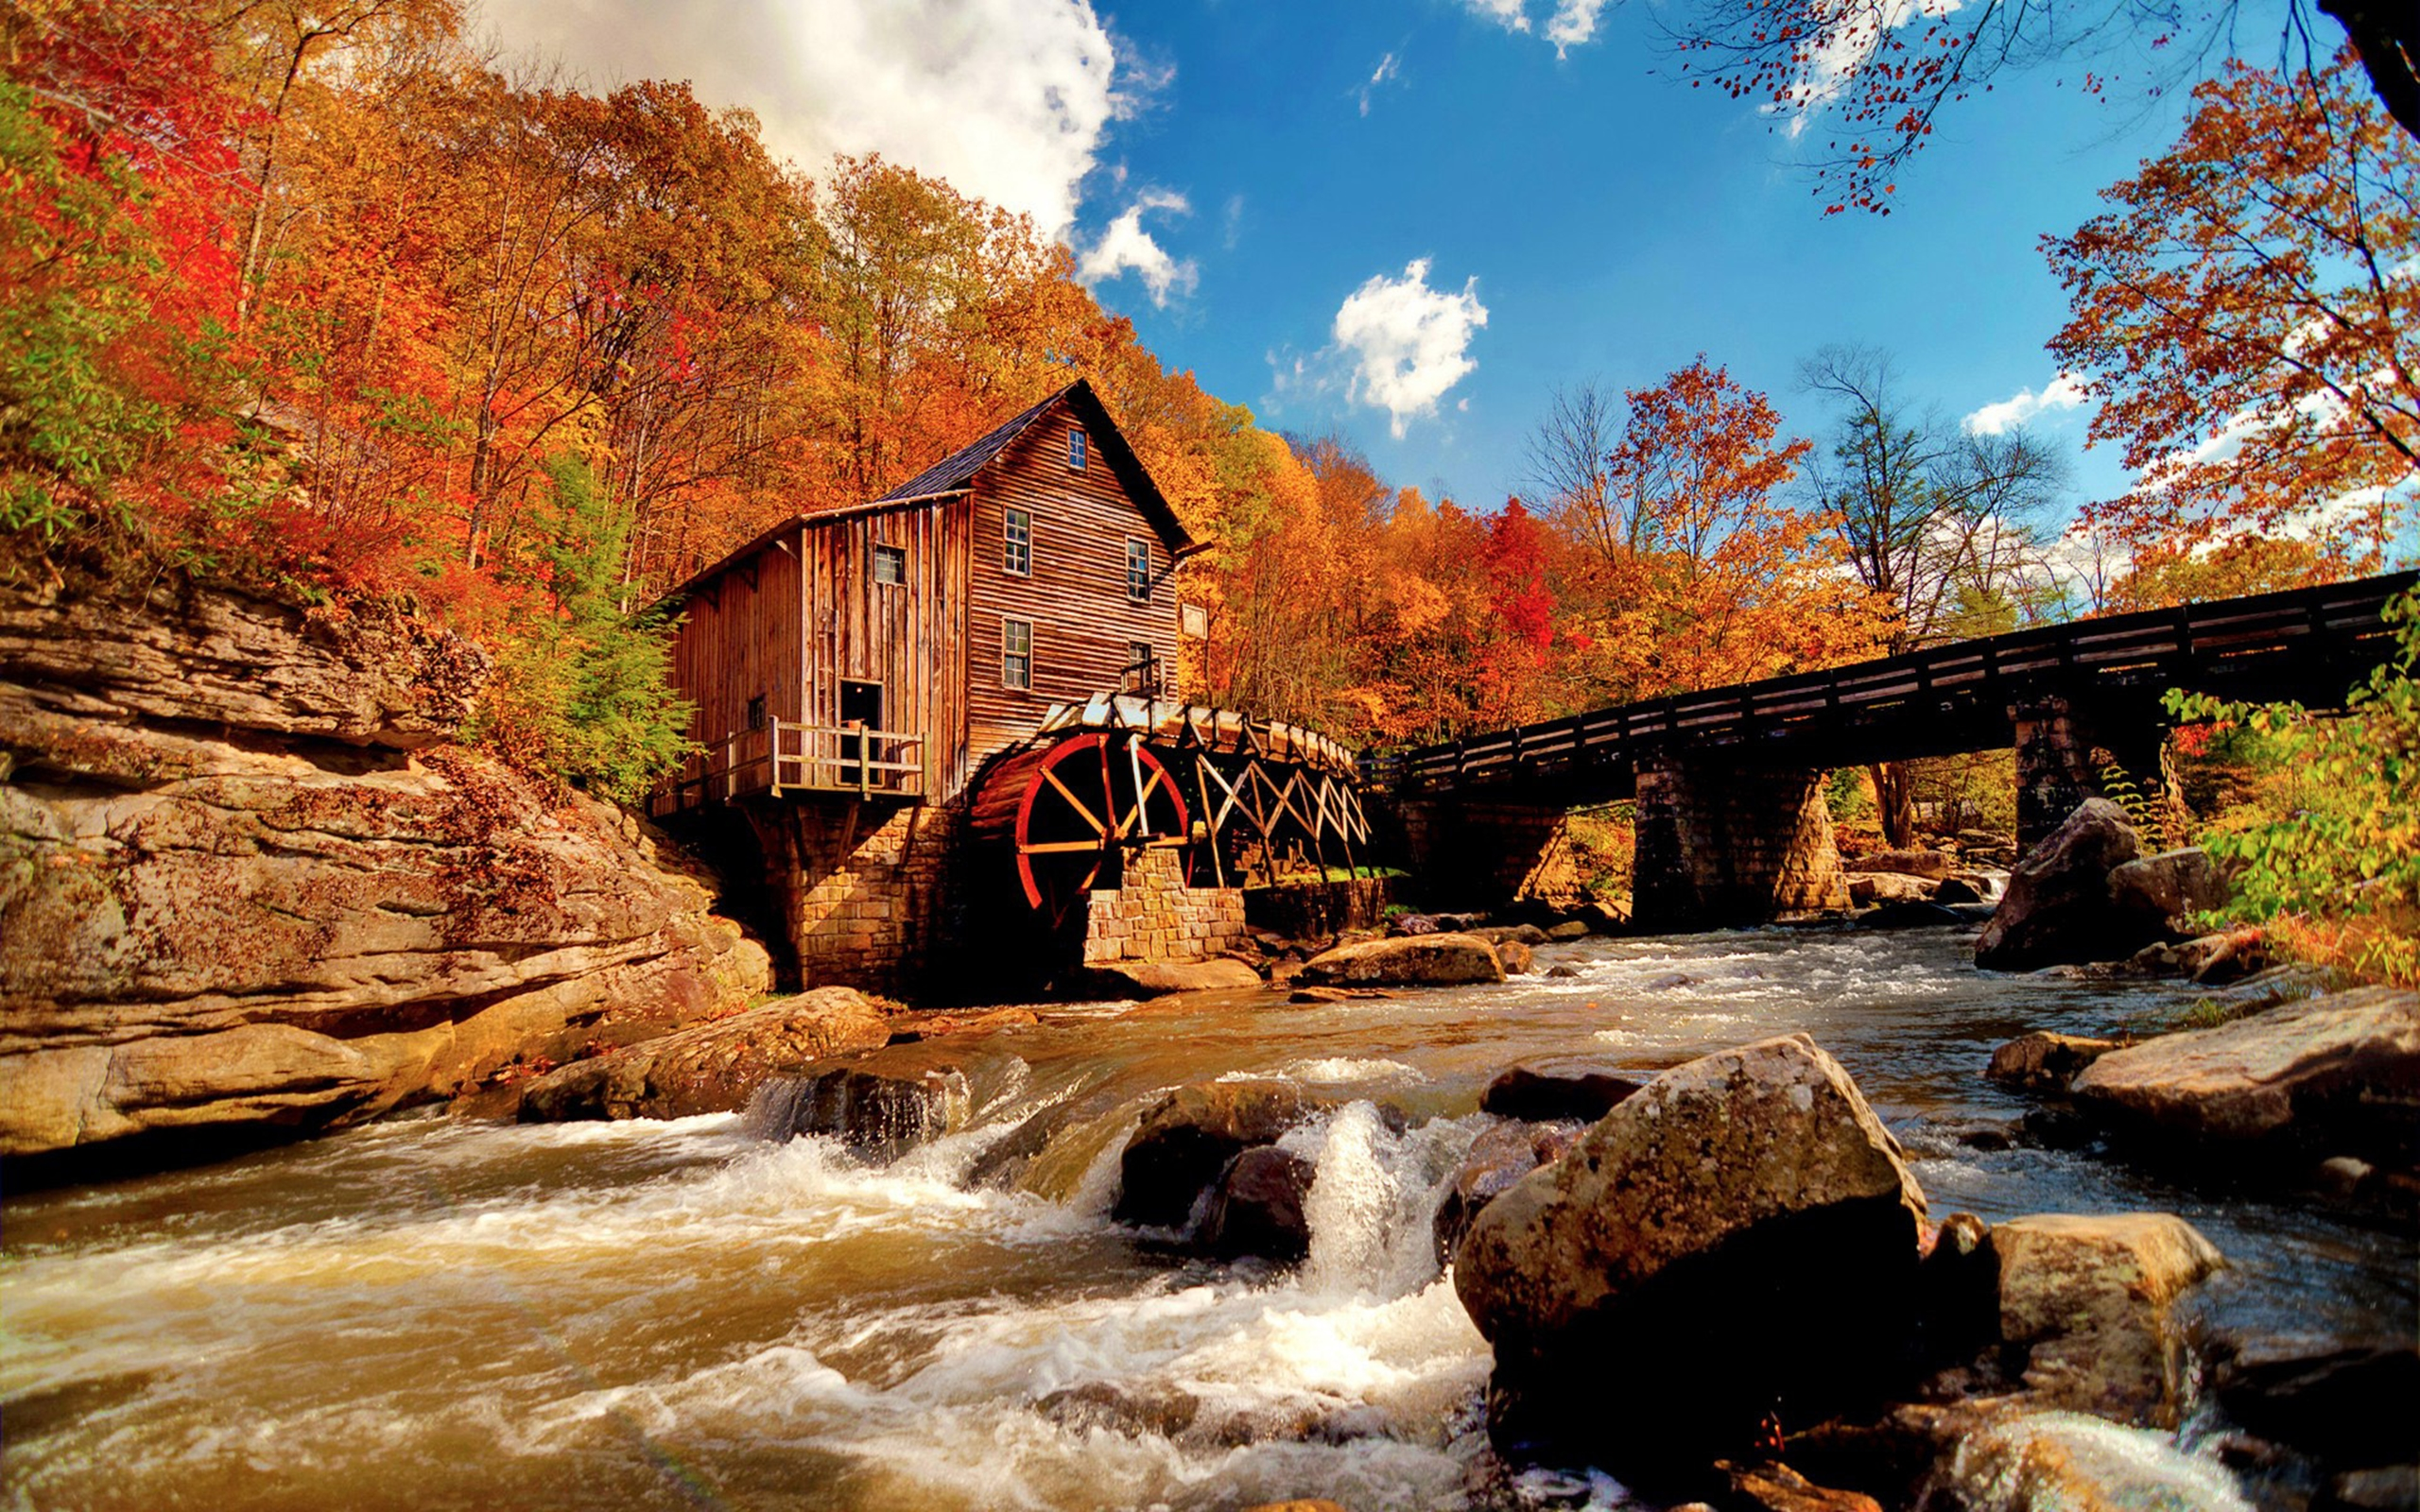 New England Fall Themed Wallpaper Mill Wide Wallpaper 493861 Wallpapers13 Com